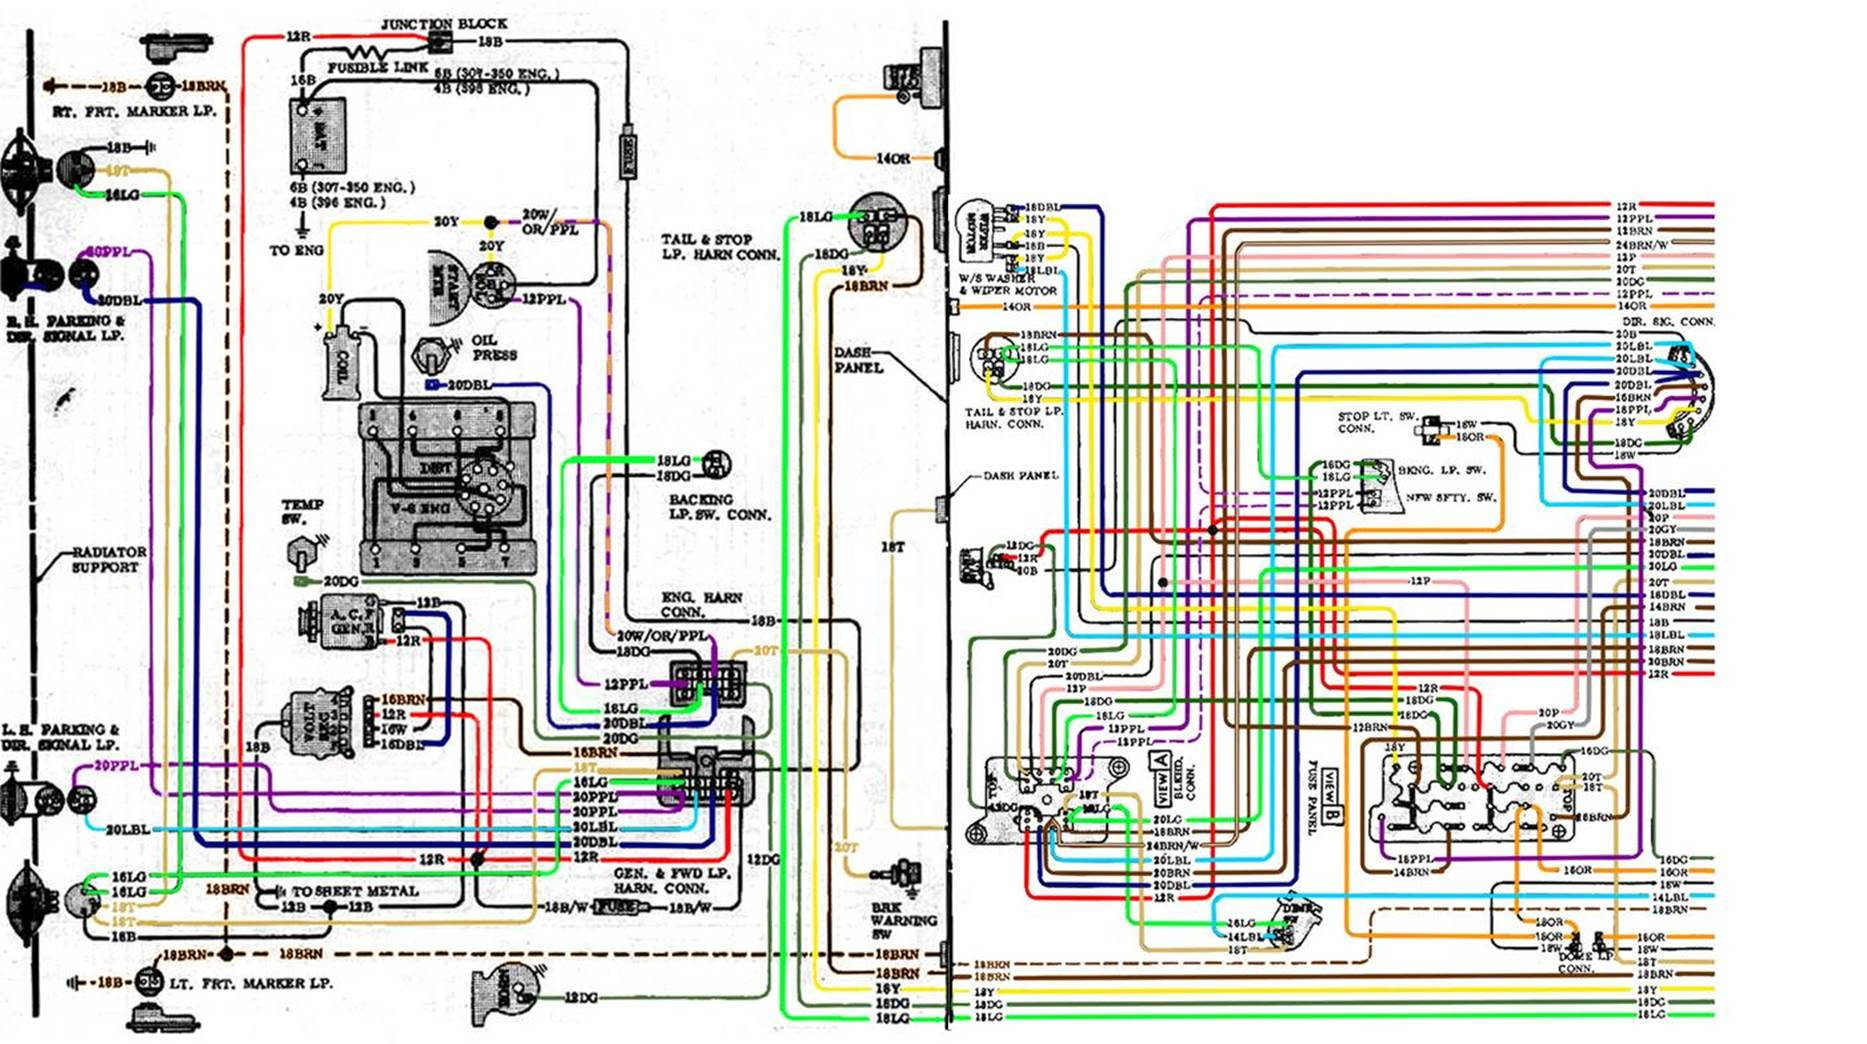 1972 Chevelle Wiring Harness - Data Wiring Diagram Today on 1972 nova wiring harness diagram, 1972 nova headliner trim, 1972 nova instrument panel,